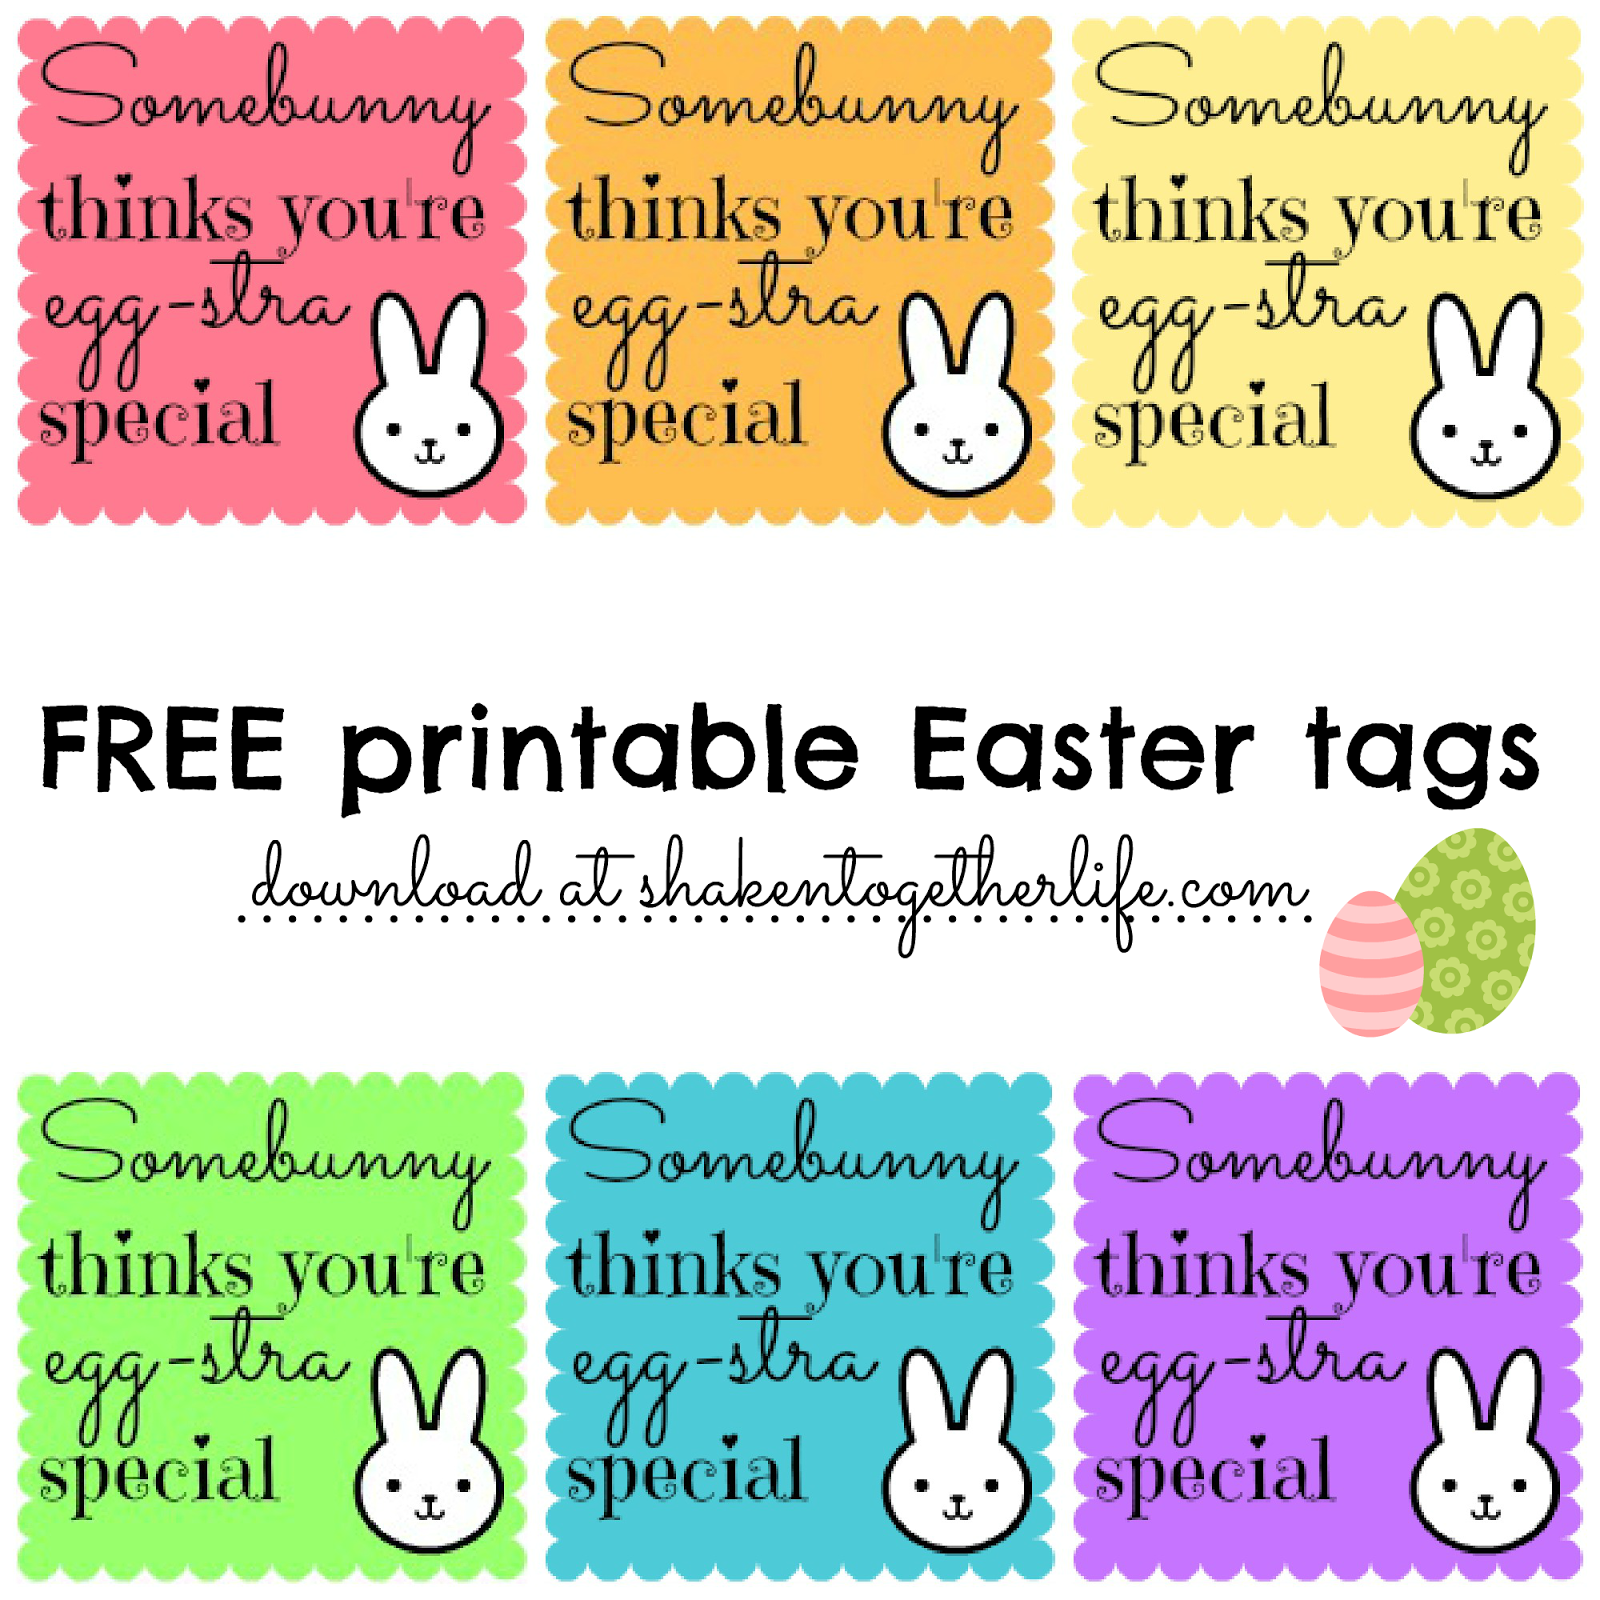 Bunny lip balm gifts for easter printable tags printable tags somebunny thinks youre egg stra special free printable easter gift tags at shakentogetherlif madi has had a bunny since she was a baby negle Images